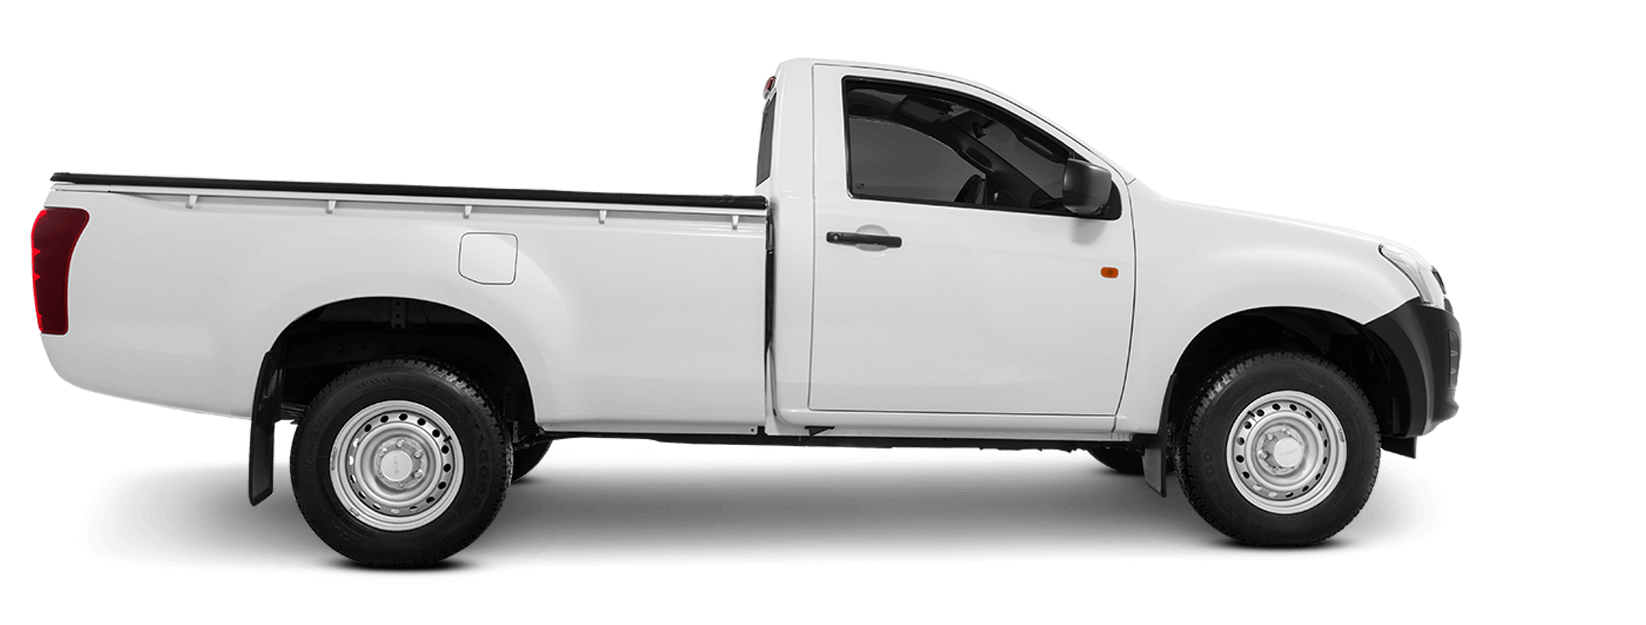 Isuzu D Max Single Cab Motors South Africa 1994 Nissan Pickup Front Suspension Diagram As Well 1985 Mew